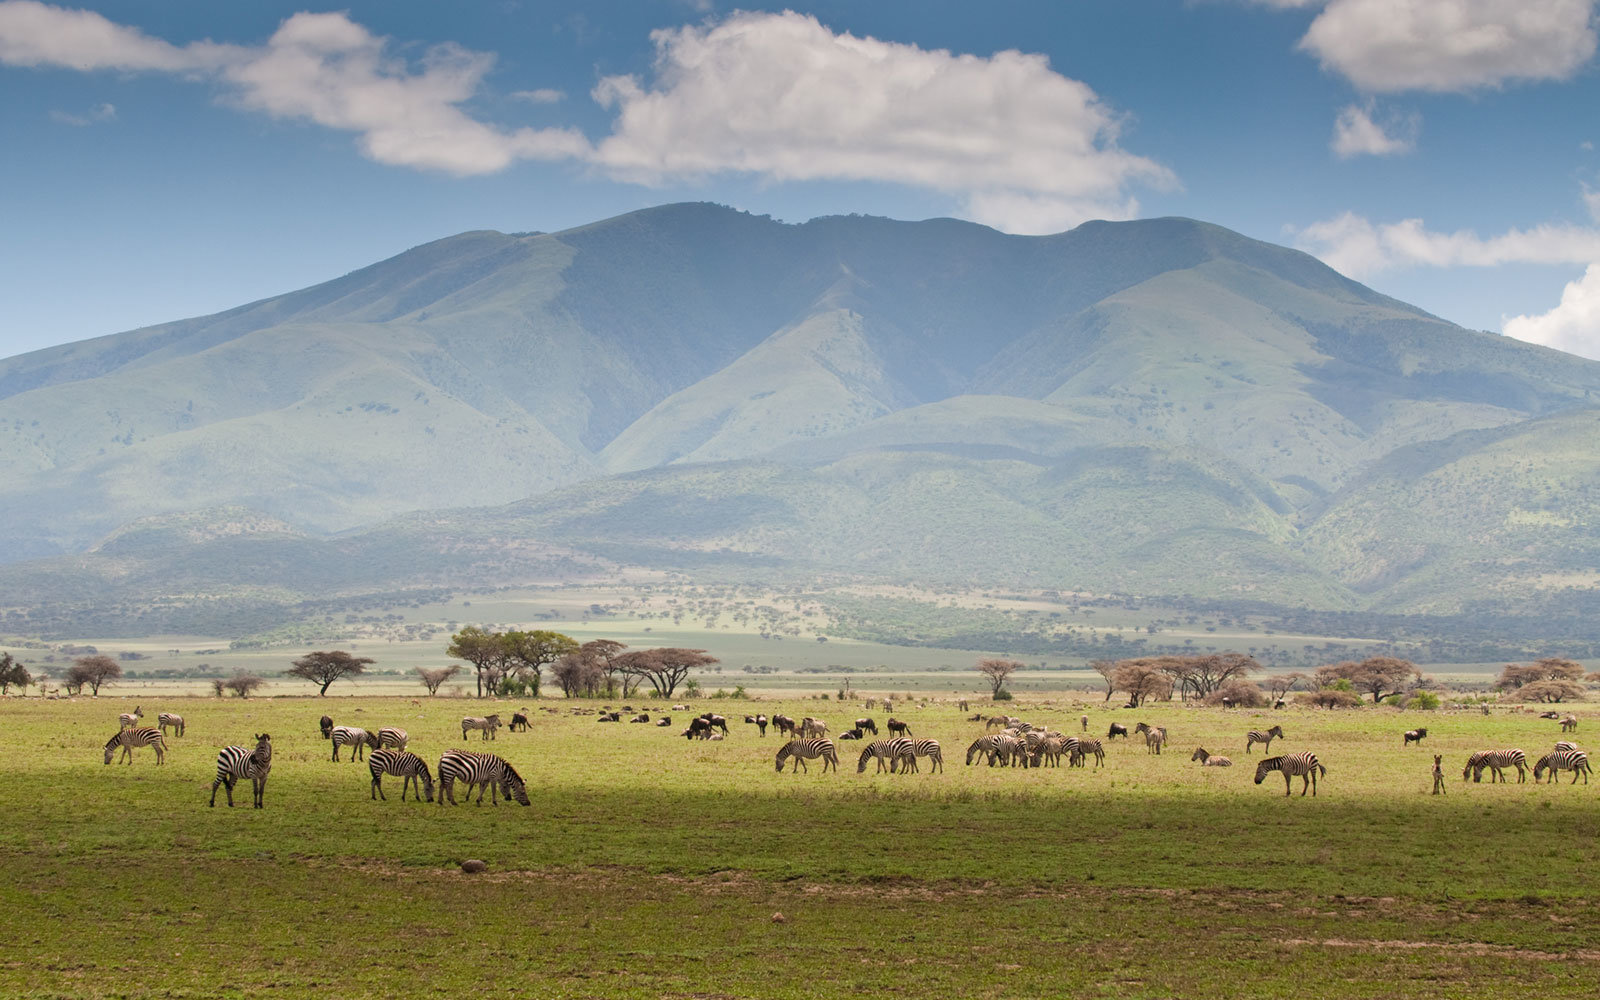 Zebras and Wildebeests, Serengeti National Park, Tanzania